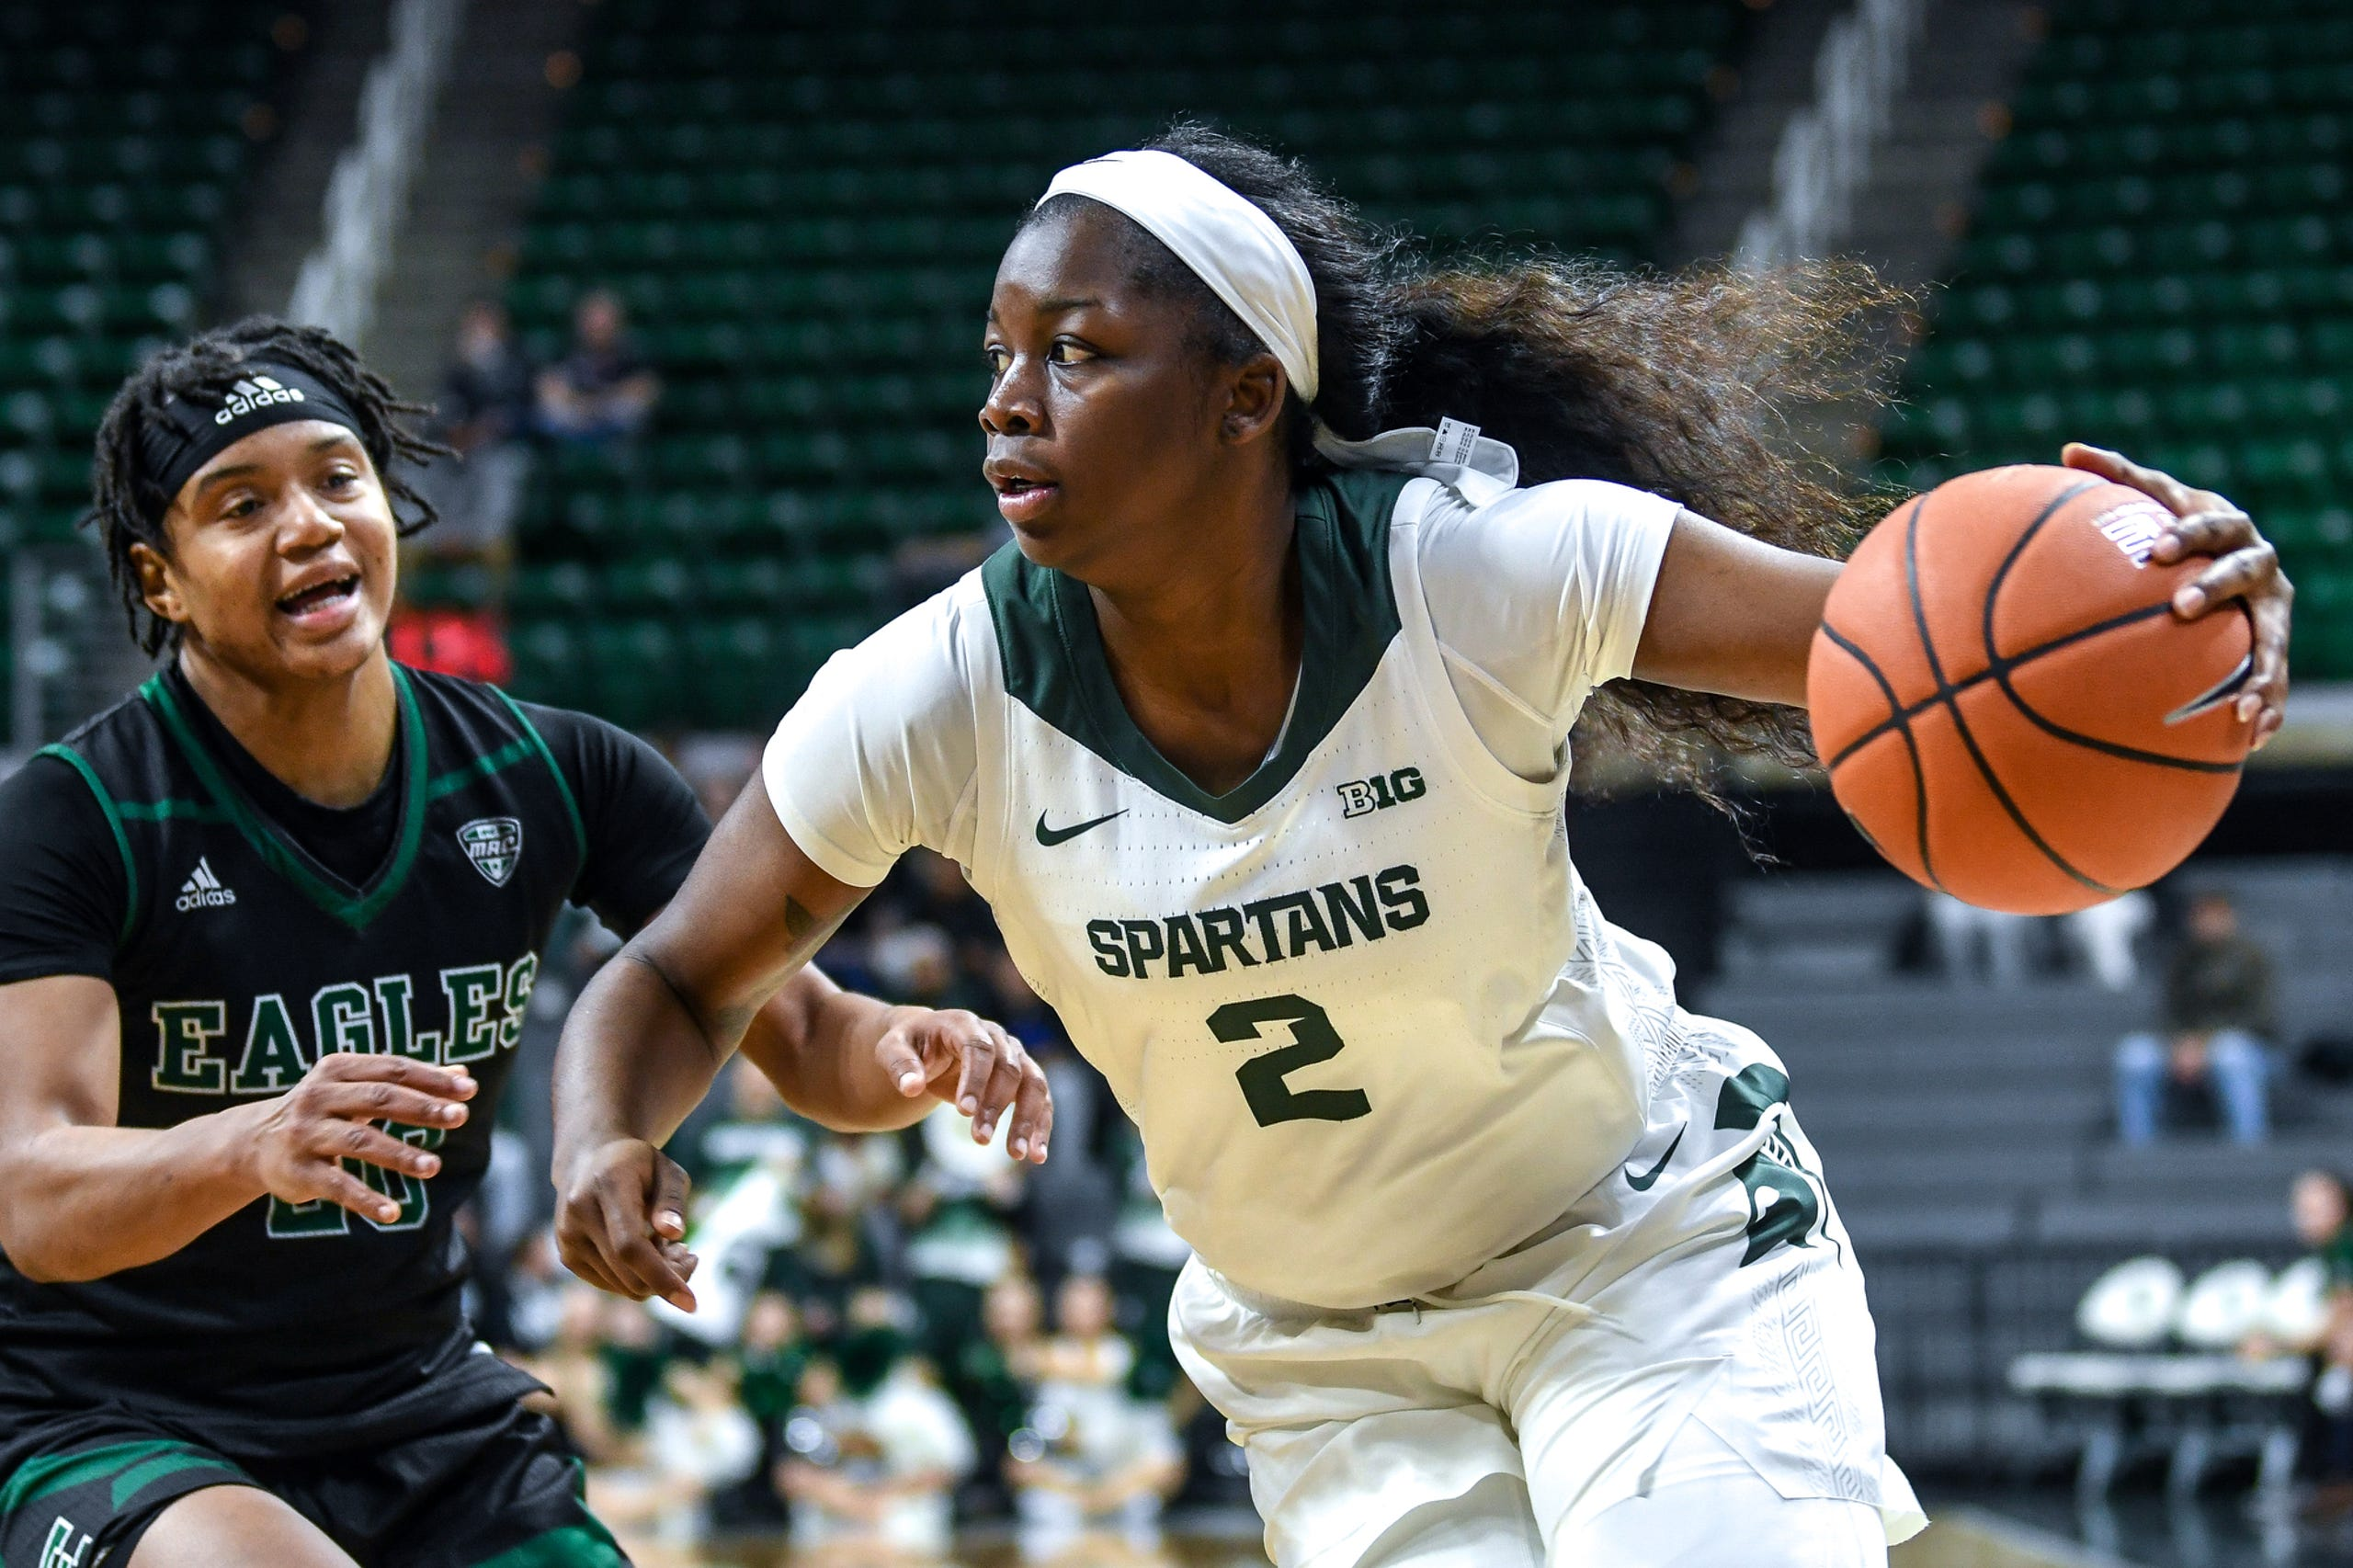 Michigan State's Mardrekia Cook moves with the ball during the fourth quarter on Tuesday, Nov. 5, 2019, at the Breslin Center in East Lansing.